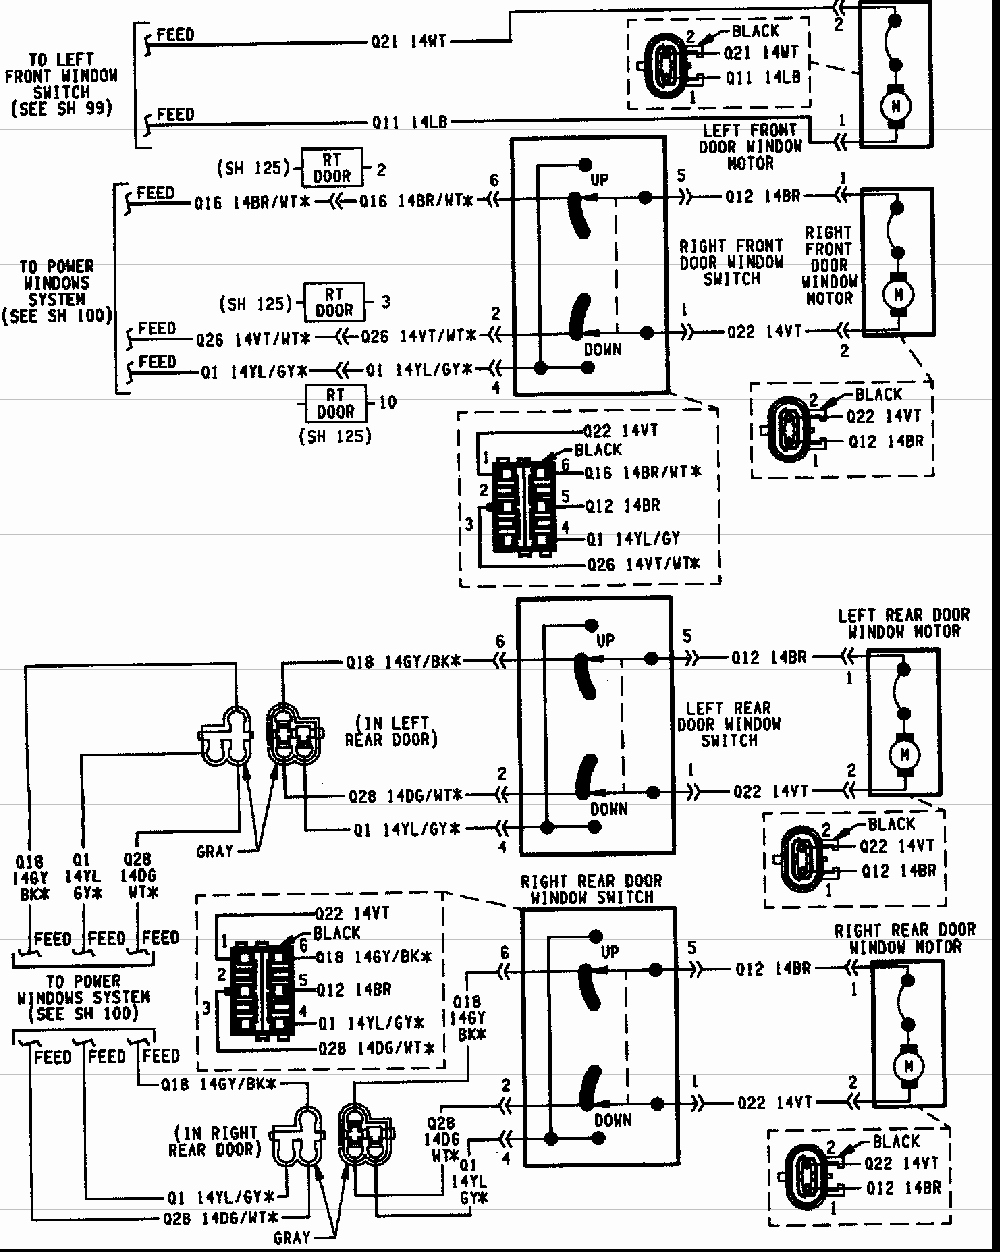 2003 jeep grand cherokee radio wiring diagram - 2002 grand cherokee radio  wiring chart trusted diagrams